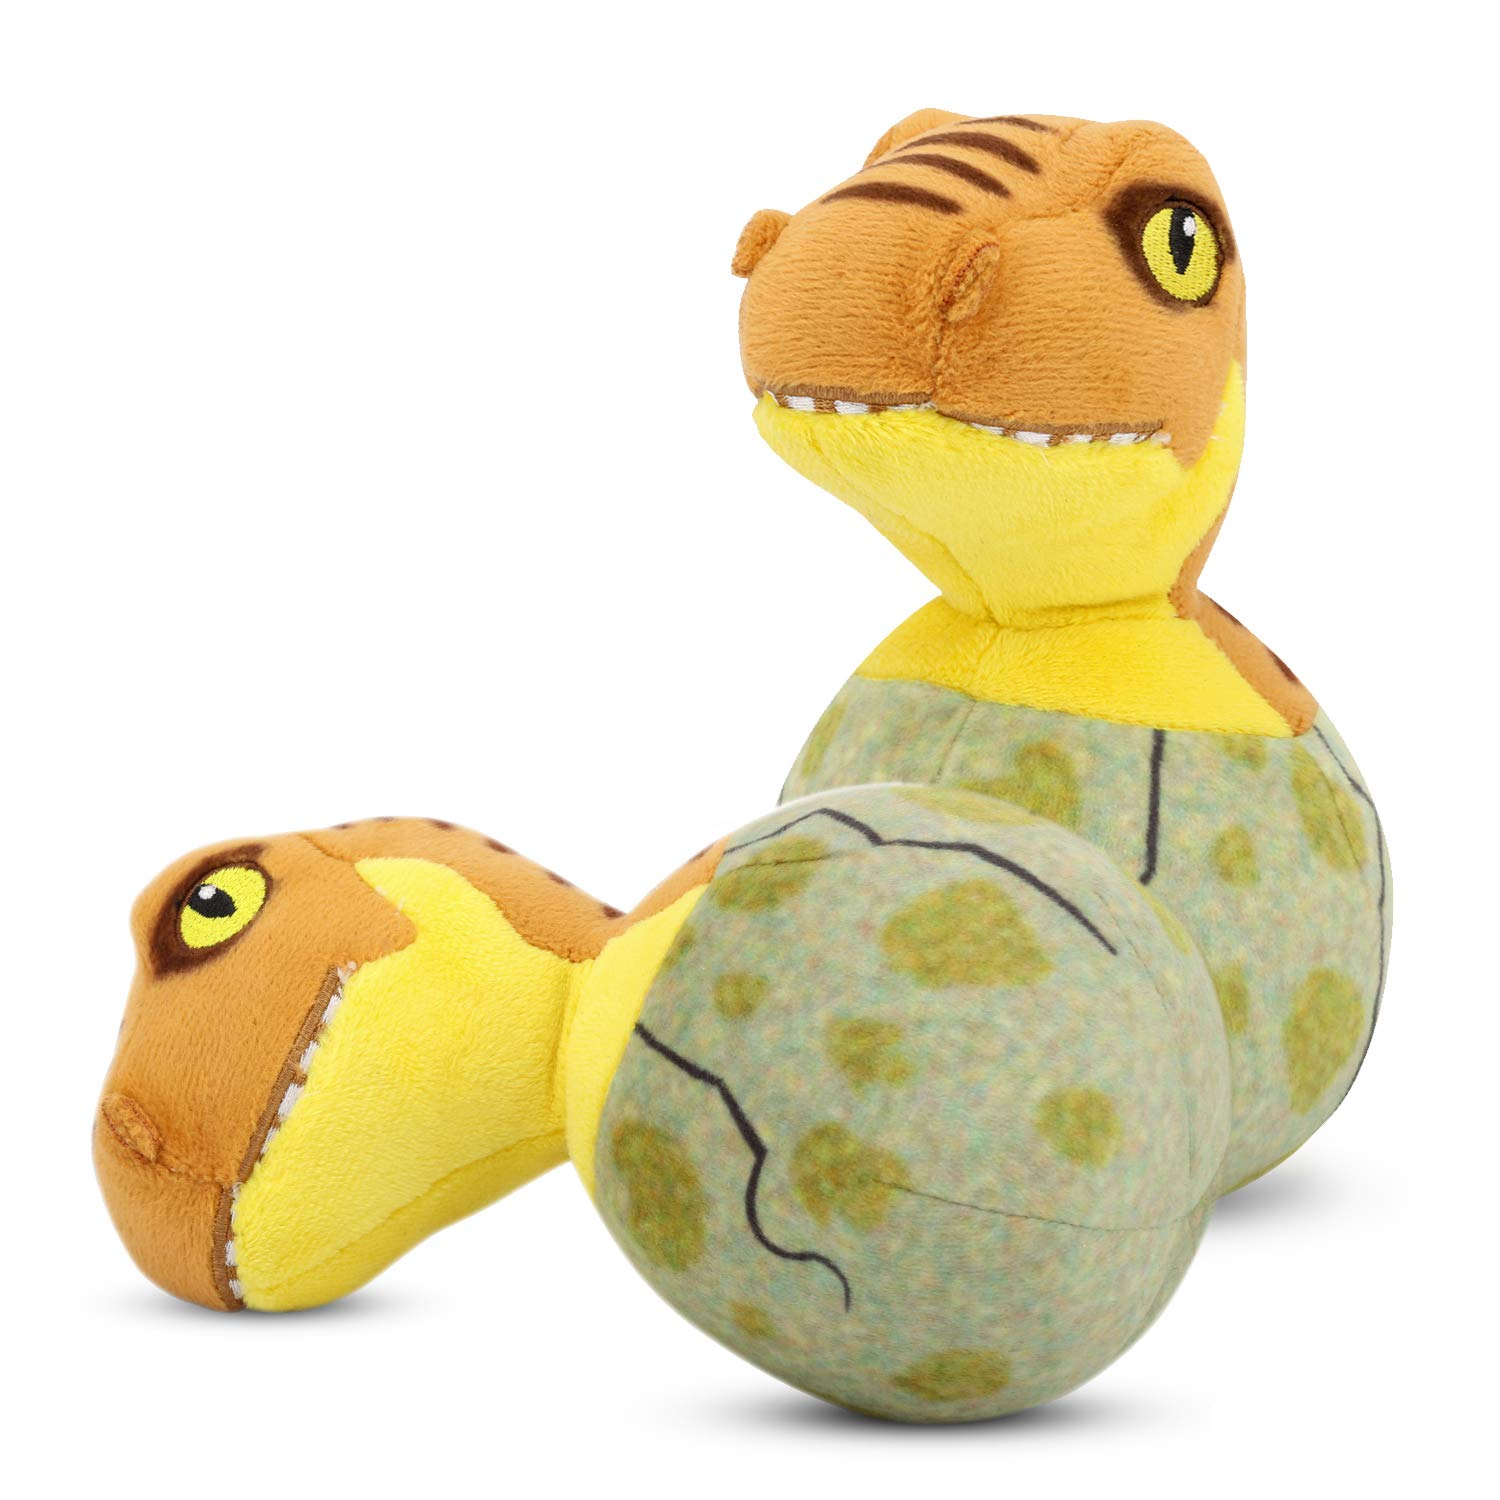 PAWABOO Stuffed Dinosaur Dog Toys, [2PACK] Bed Time Plush Animal Toys Soft Dinosaur for Kids,Puppy Bite Play Chew Toys for Pet, Non-toxic, Brown